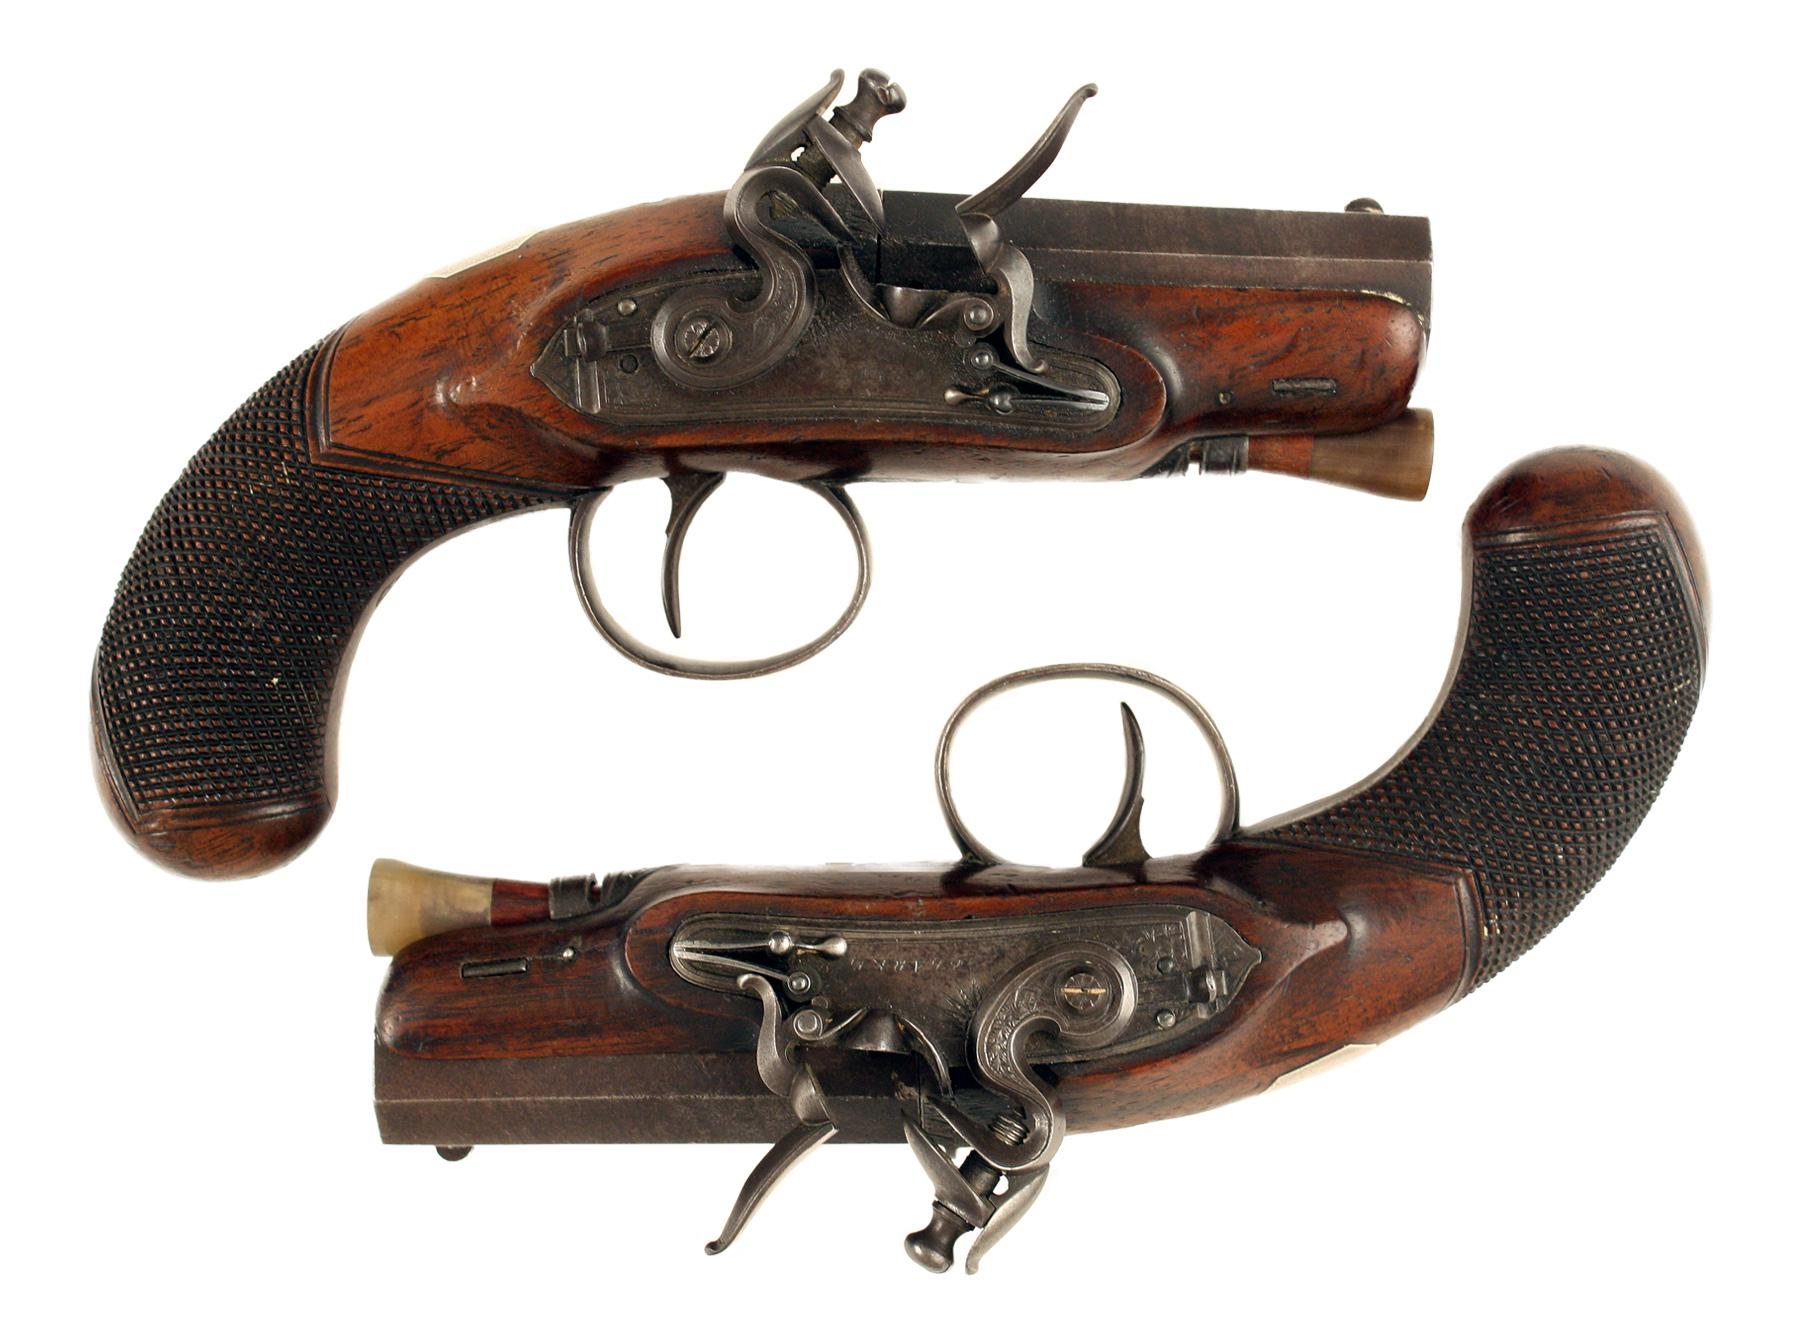 A Diminutive Pair of Flintlock Pistols by Clarke